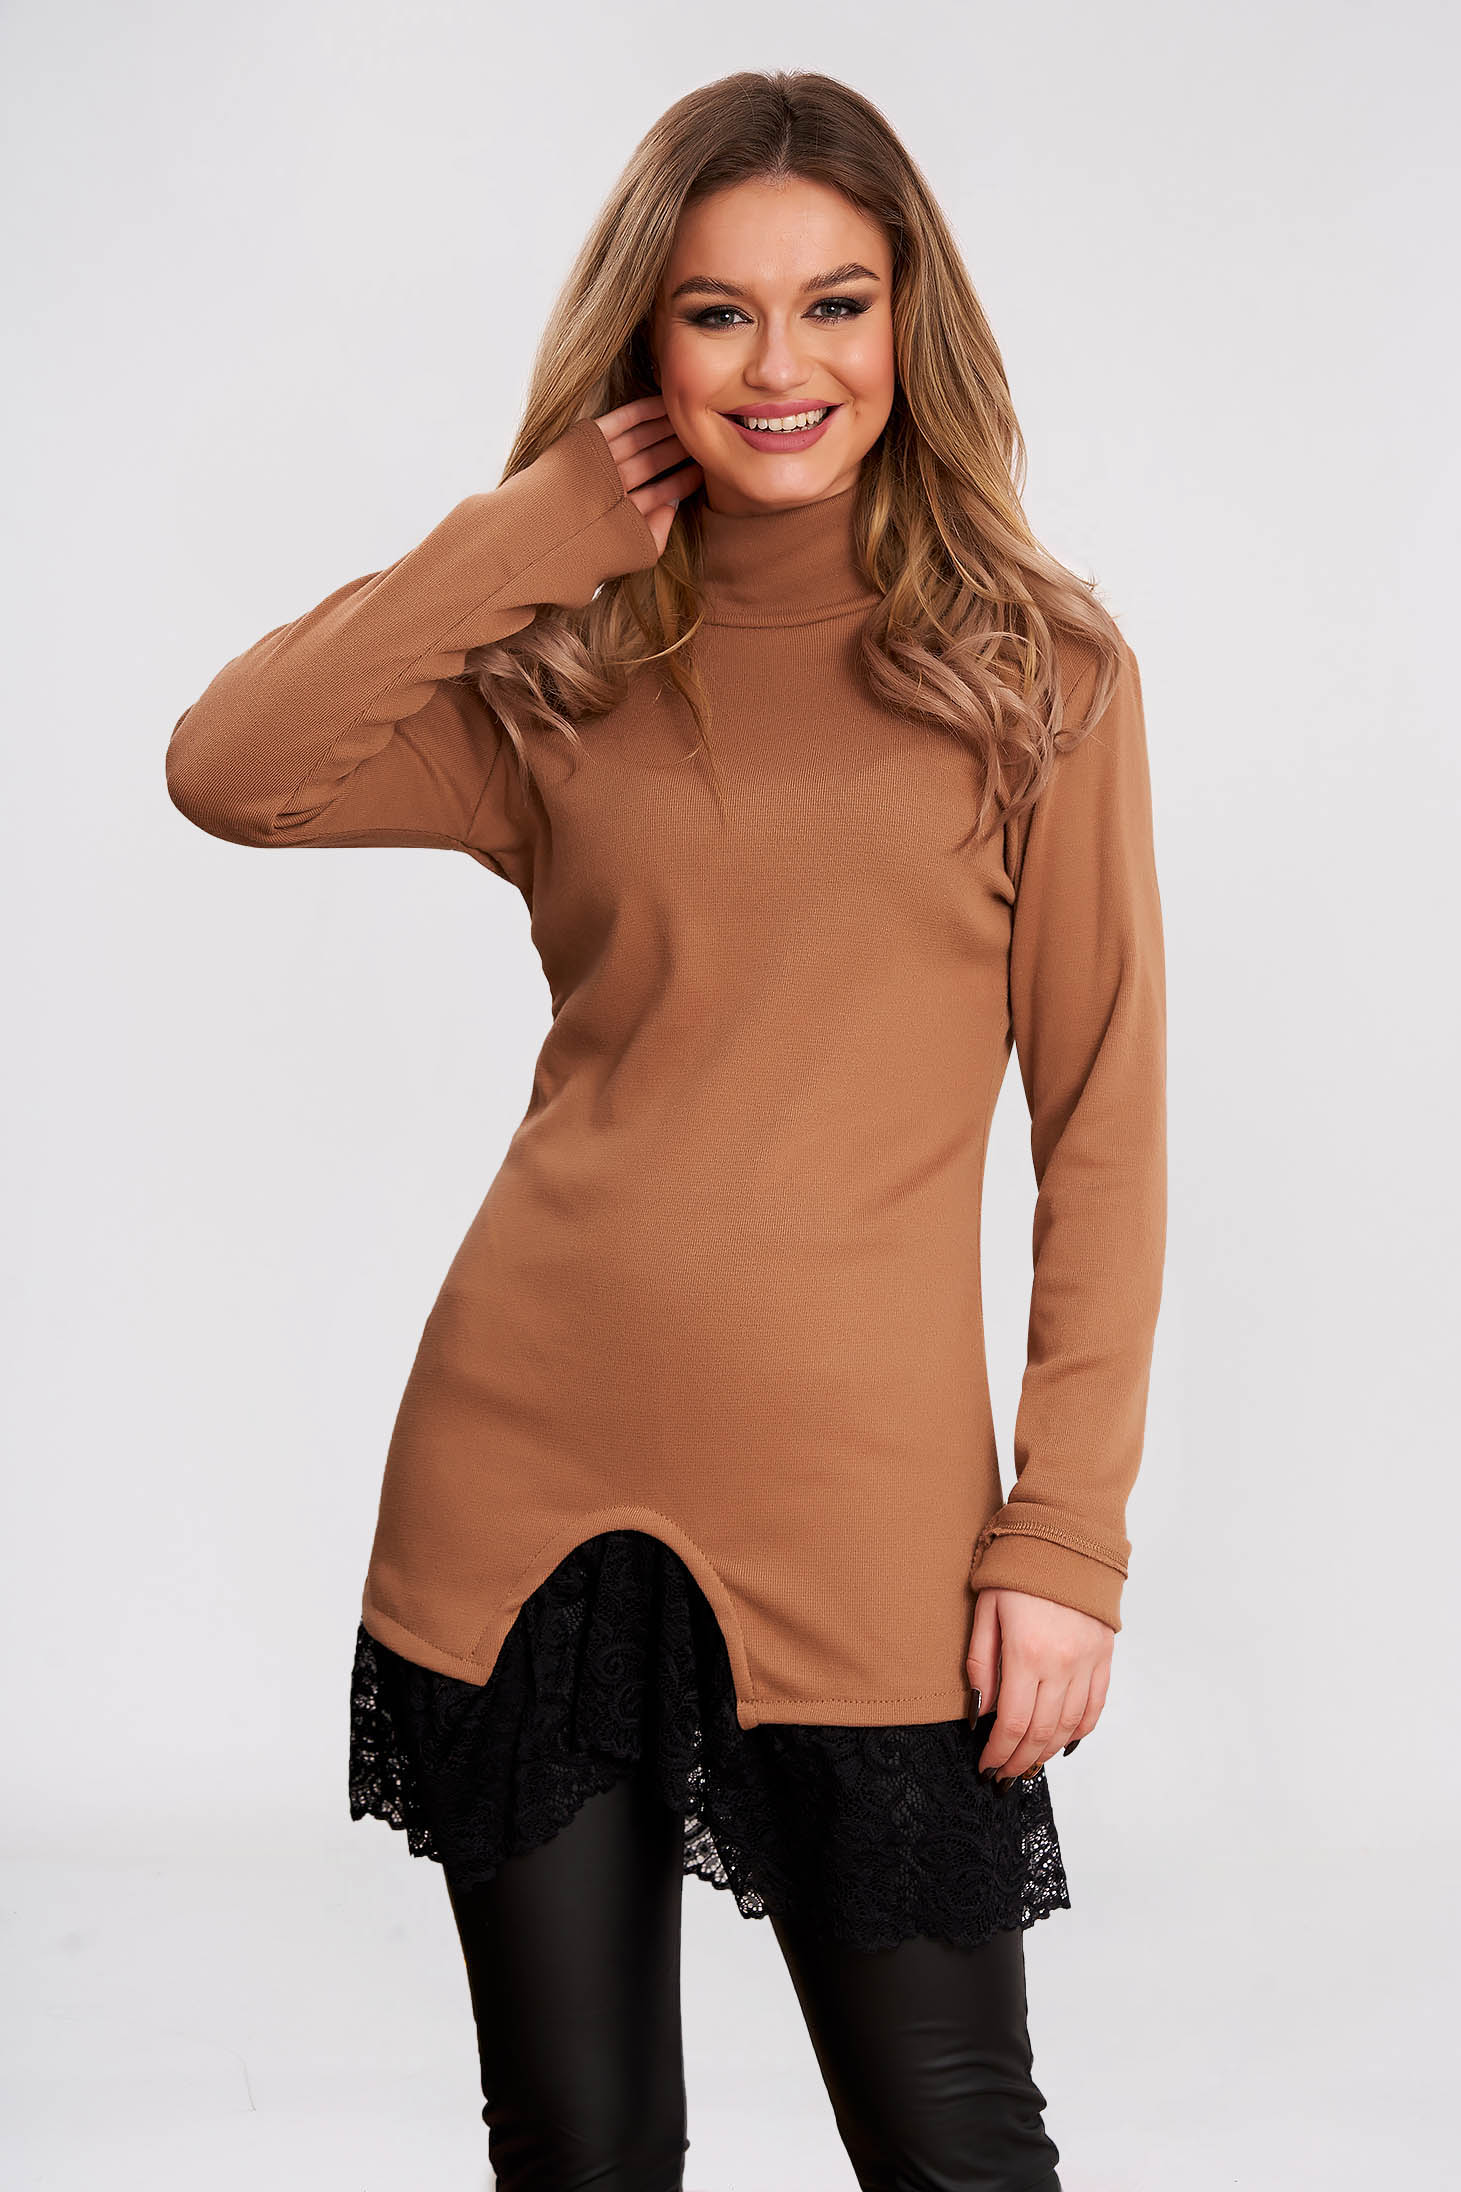 Women`s blouse cappuccino knitted turtleneck with lace details long